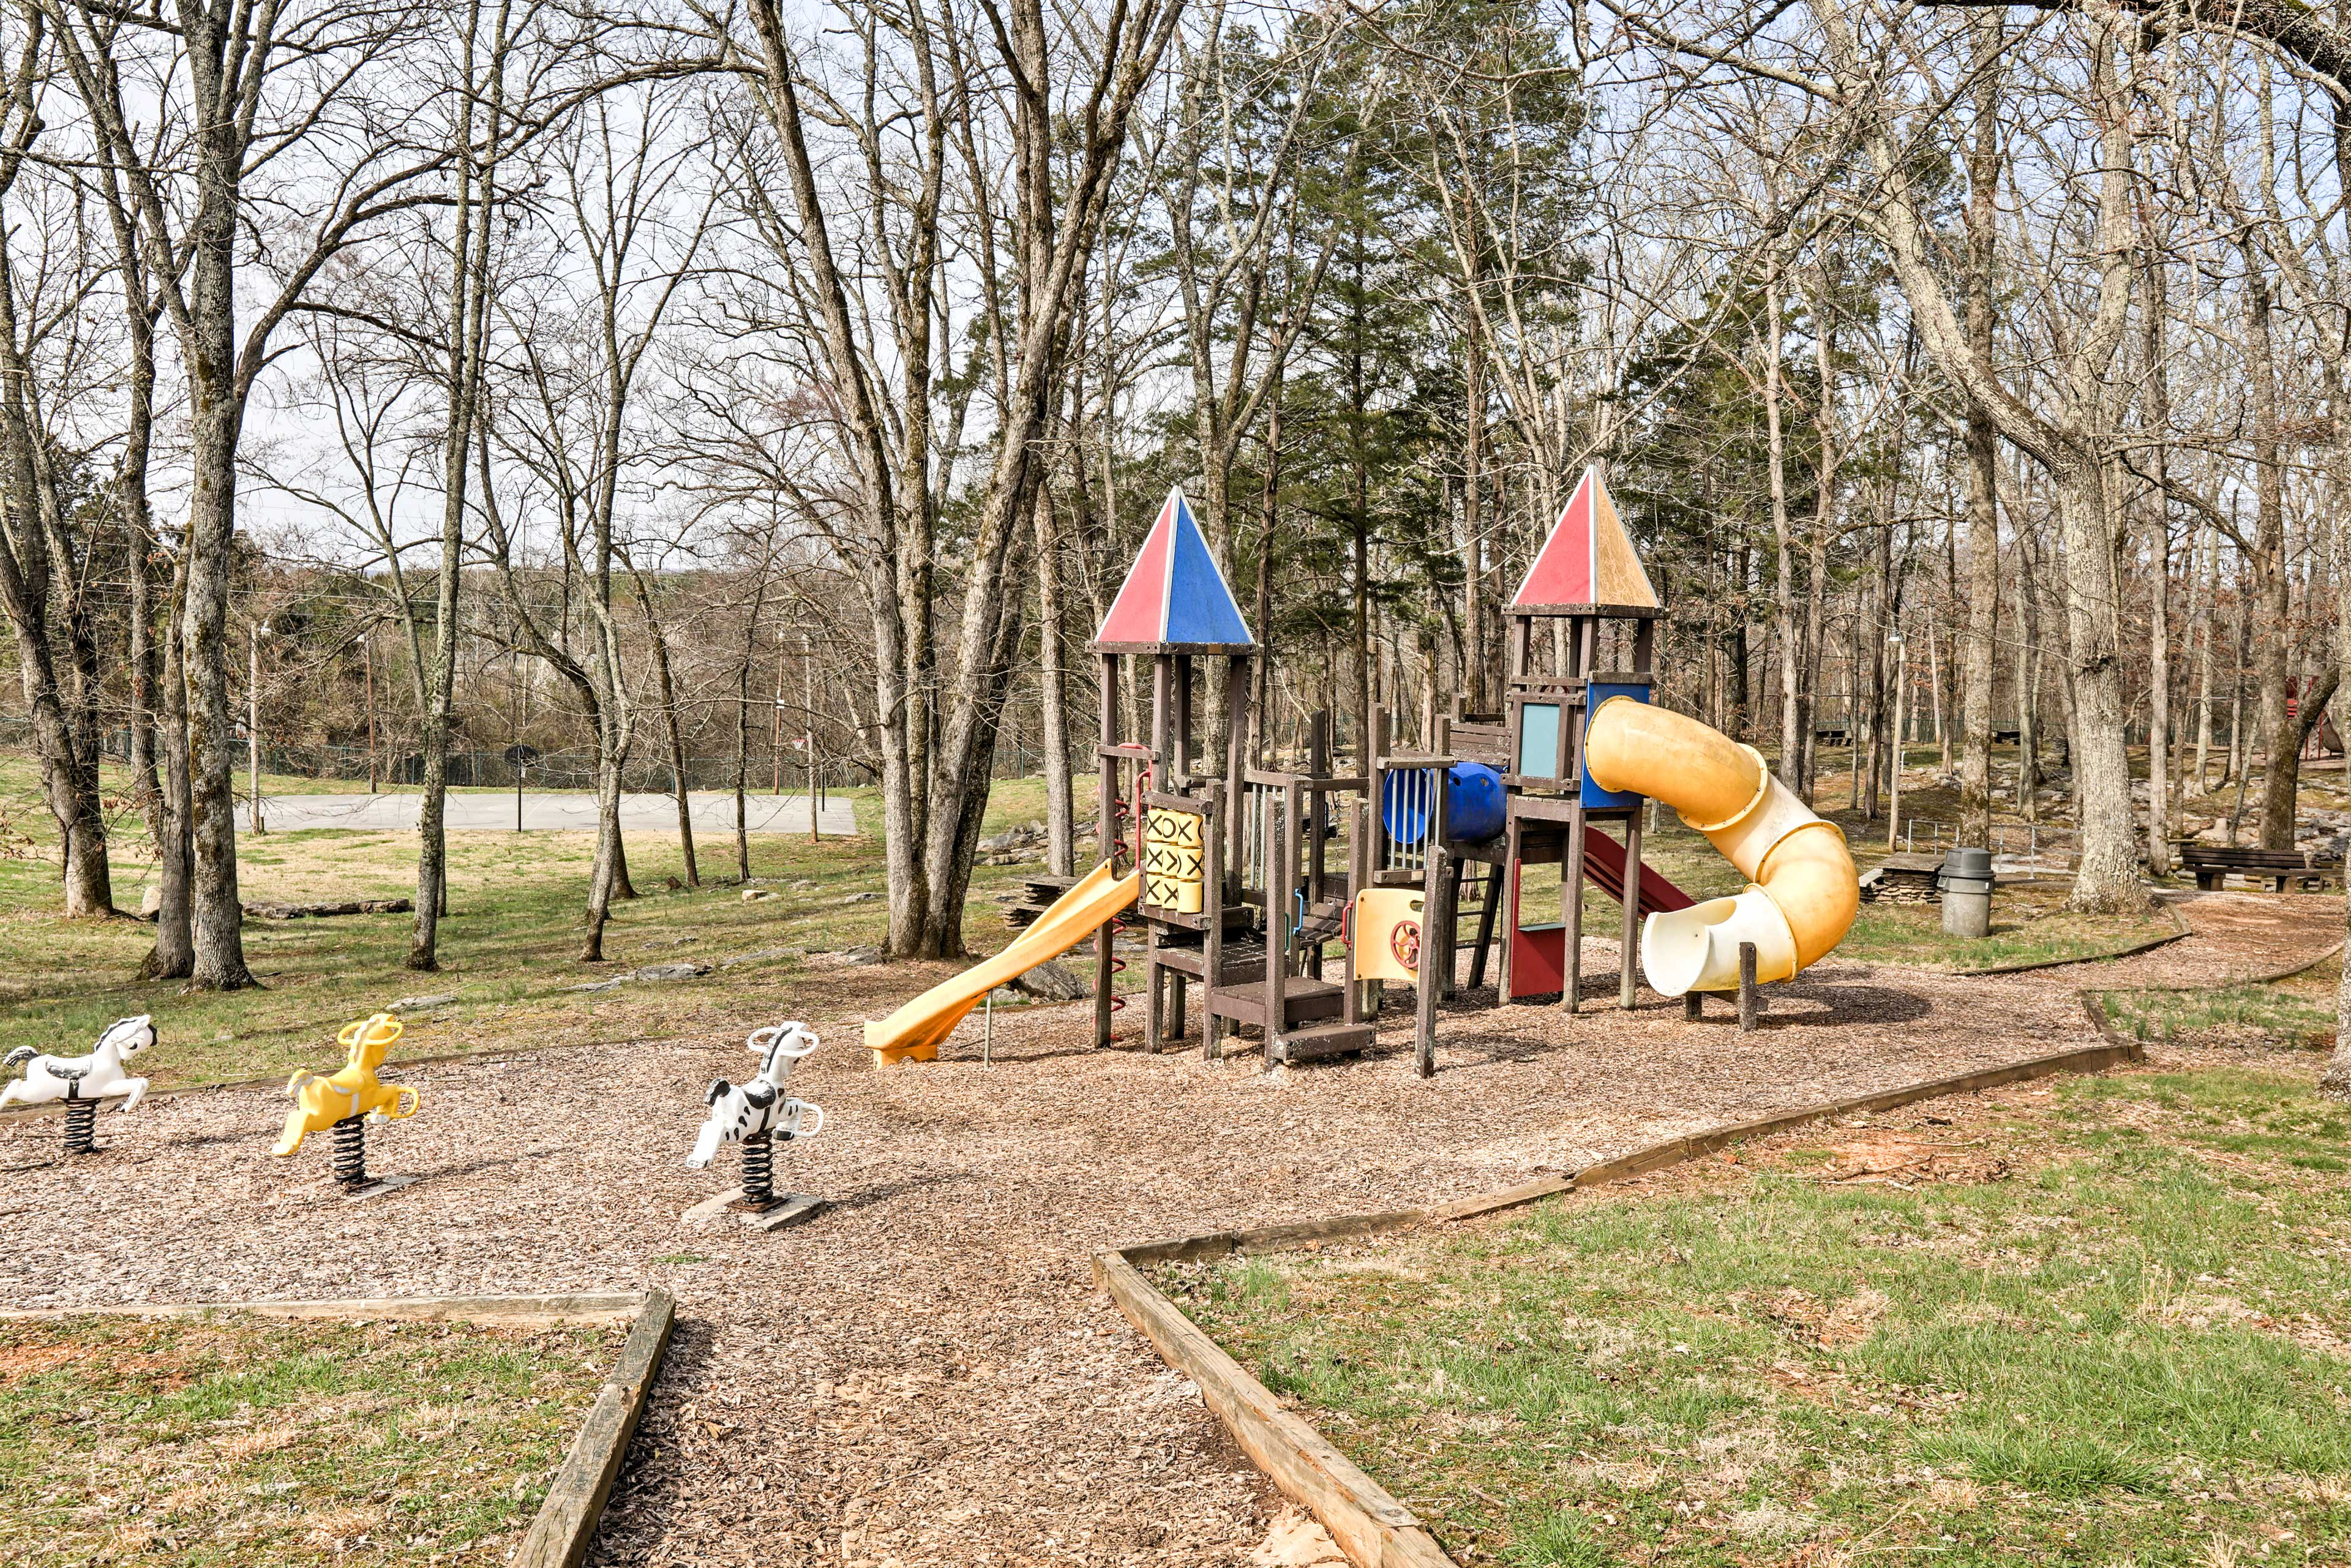 This home is perfect for family reunions, complete with swings and slides!